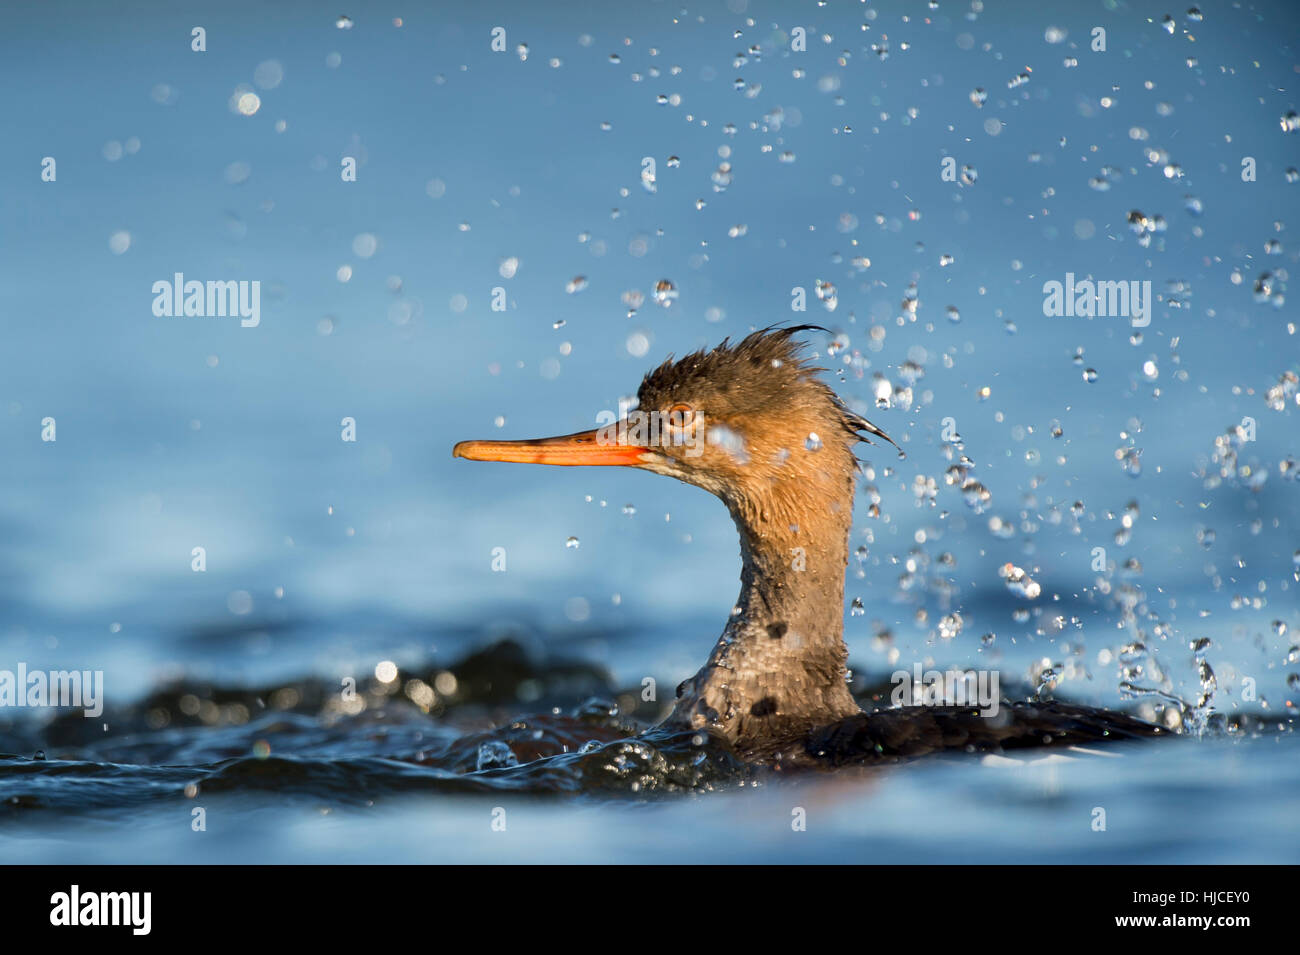 A Red-breasted Merganser swims in the bright blue water and creates a large splash of water. - Stock Image